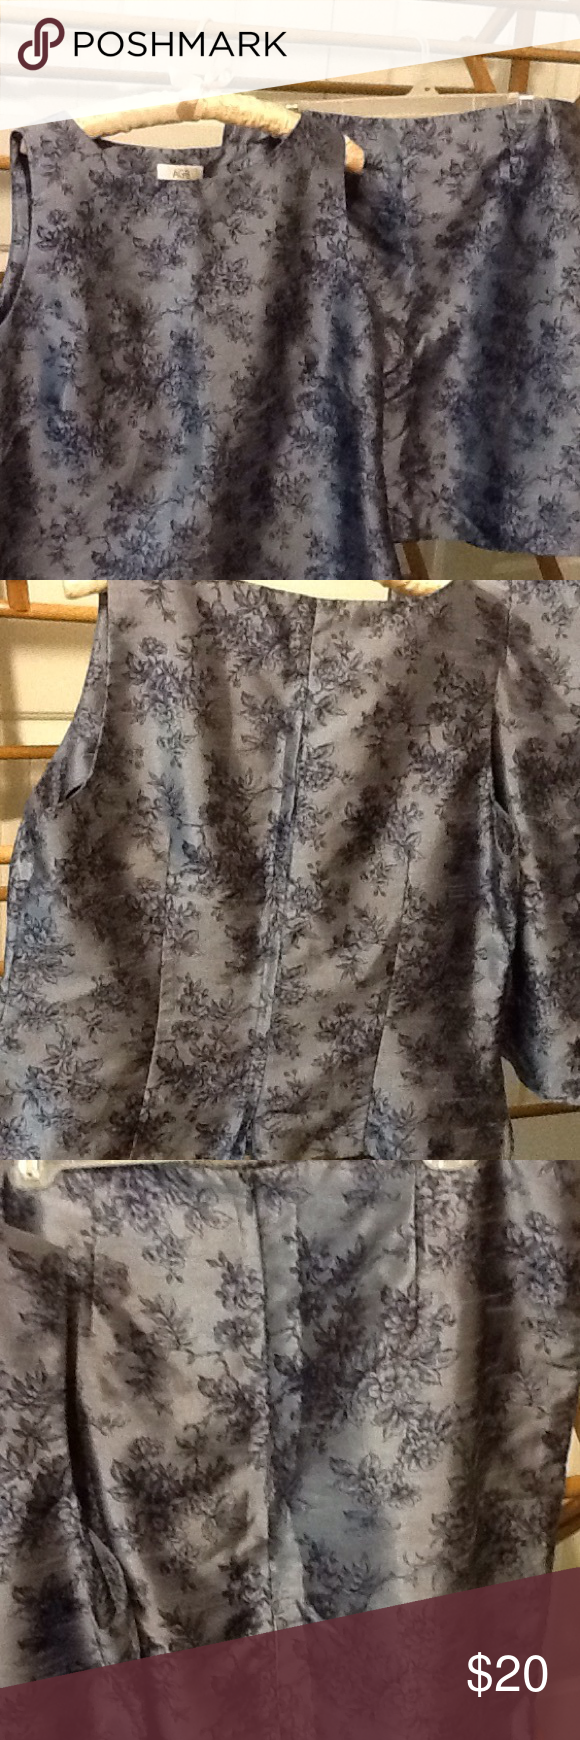 "Ladies 2 Pc. Skirt Set Blue Floral 2 Diff Sizes Looks and feels like silk. Top is size 14, bottom size 16. Polyester and rayon. Zipper in back of top and back of skirt. Skirt 33"" waist, 40"" hips 20"" long. Top size 14. 40"" bust, 38"" waist, 42"" hips, 21"" long. In great condition. AGB Byer California Skirts Skirt Sets"